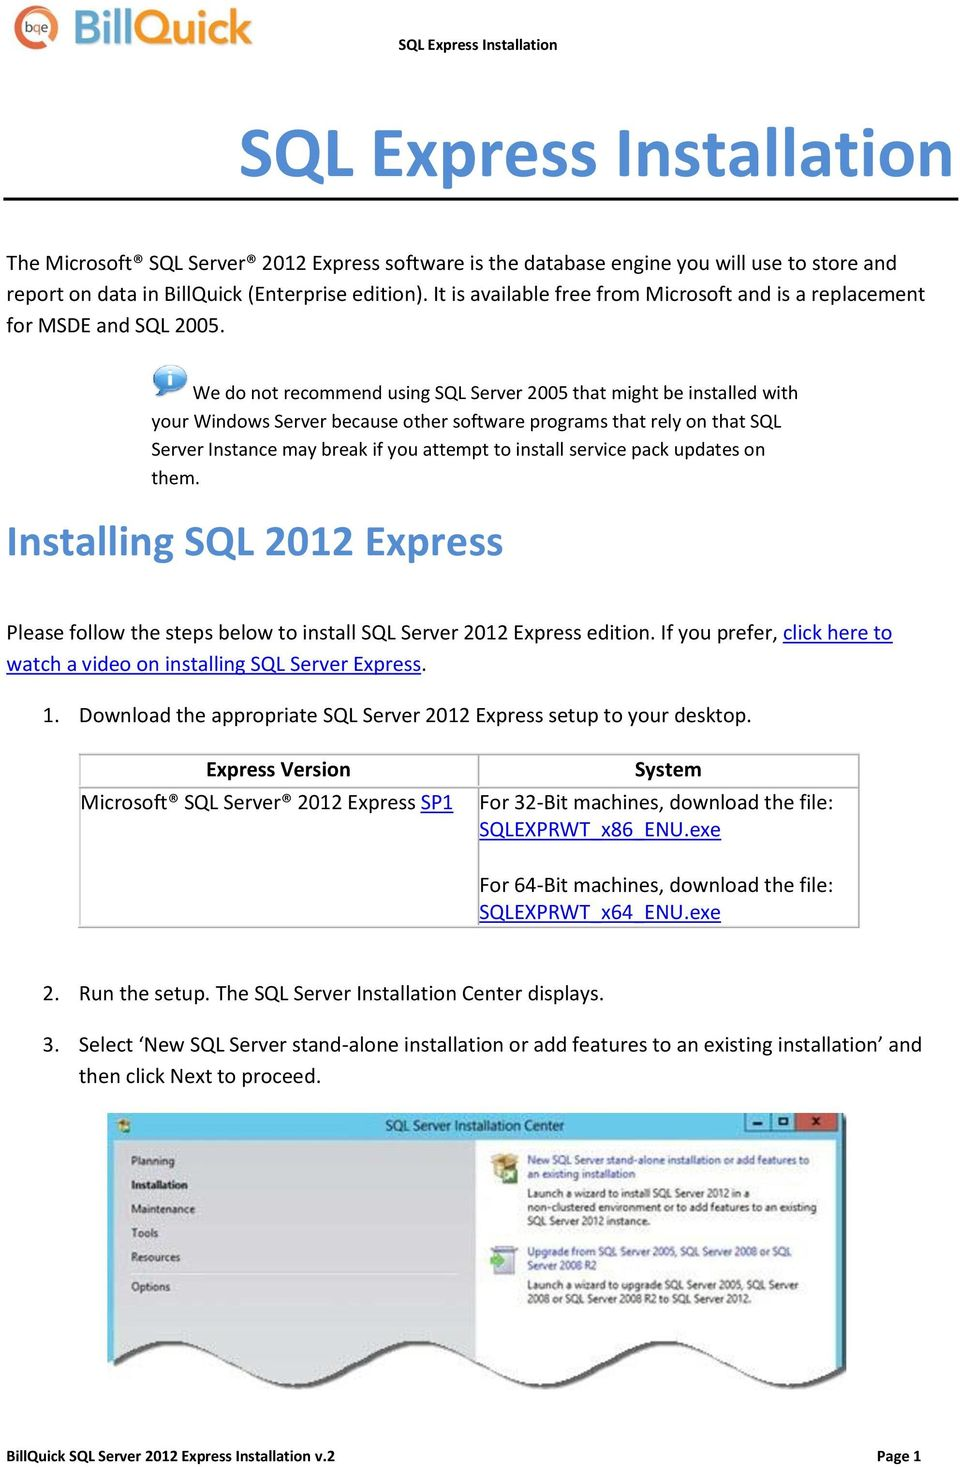 We do not recommend using SQL Server 2005 that might be installed with your Windows Server because other software programs that rely on that SQL Server Instance may break if you attempt to install